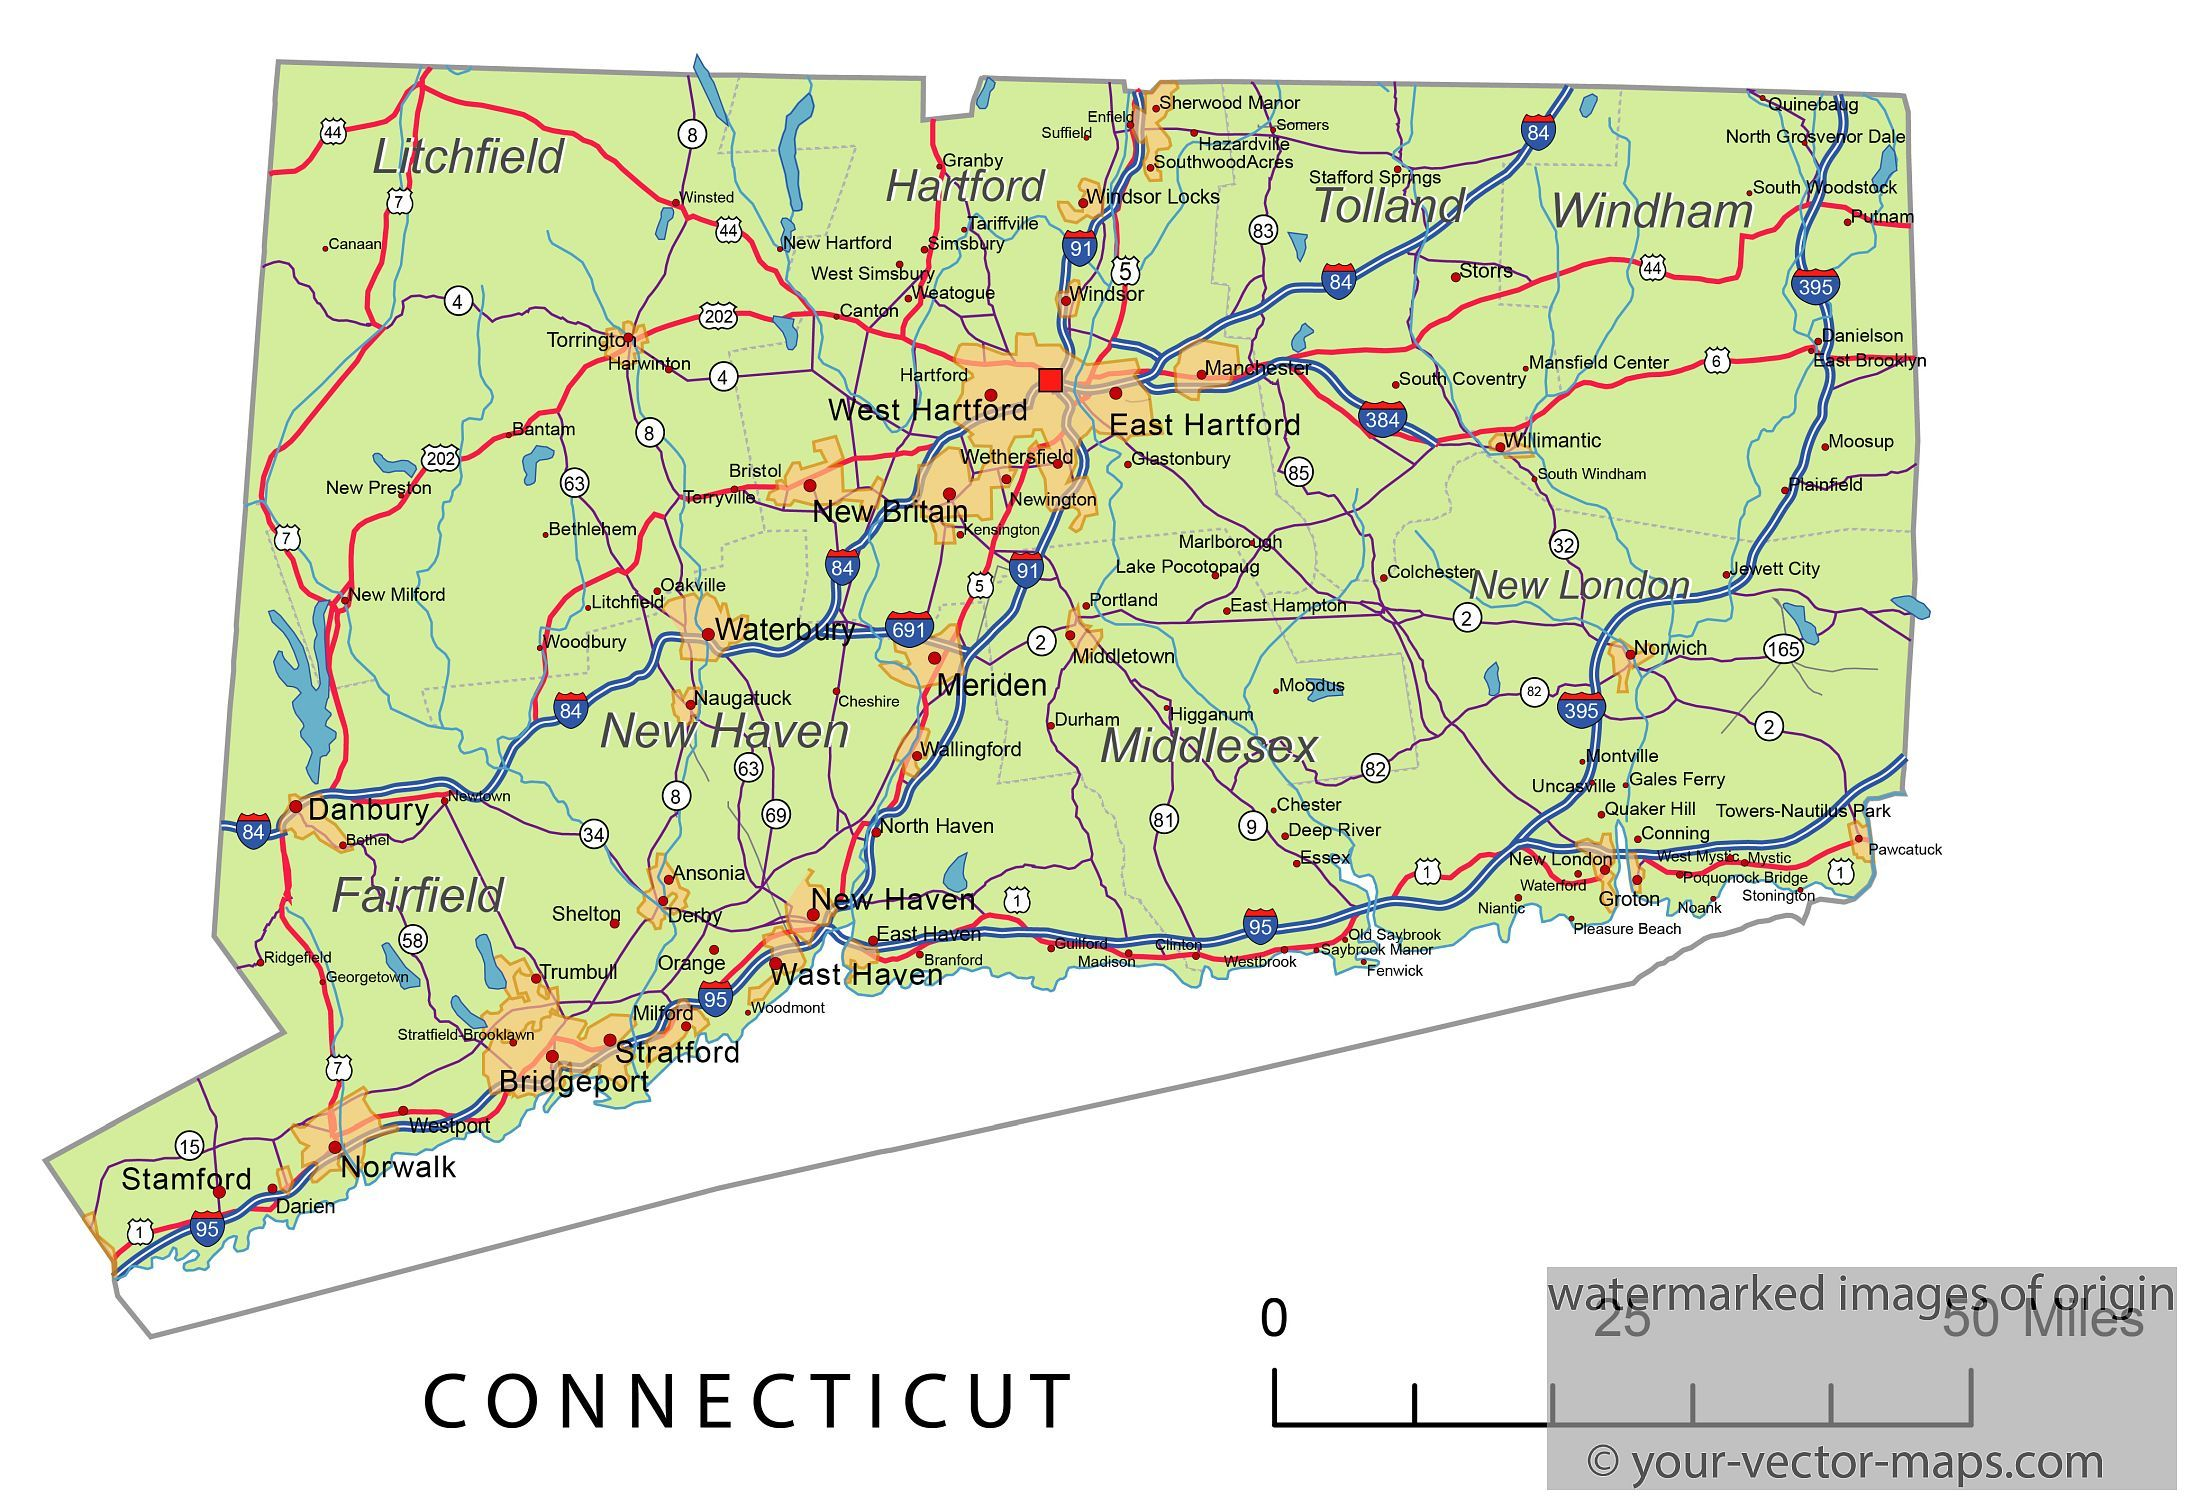 Connecticut State Route Network Connecticut Highways Map Cities - Connecticut state map